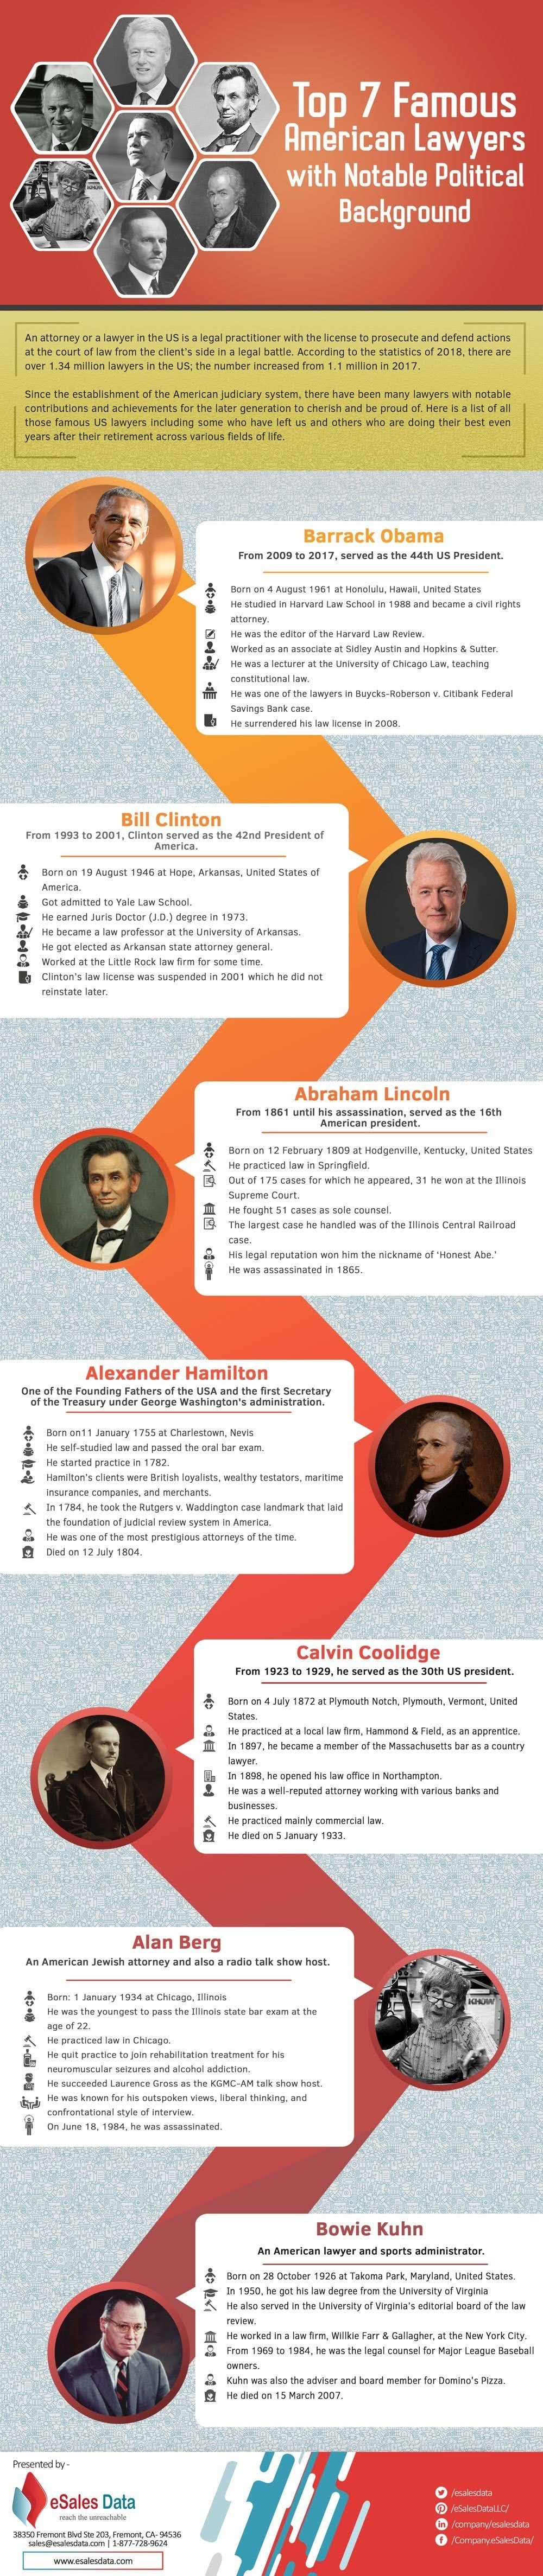 7 Famous American Lawyers With Notable Political Background #infographic #Law #History